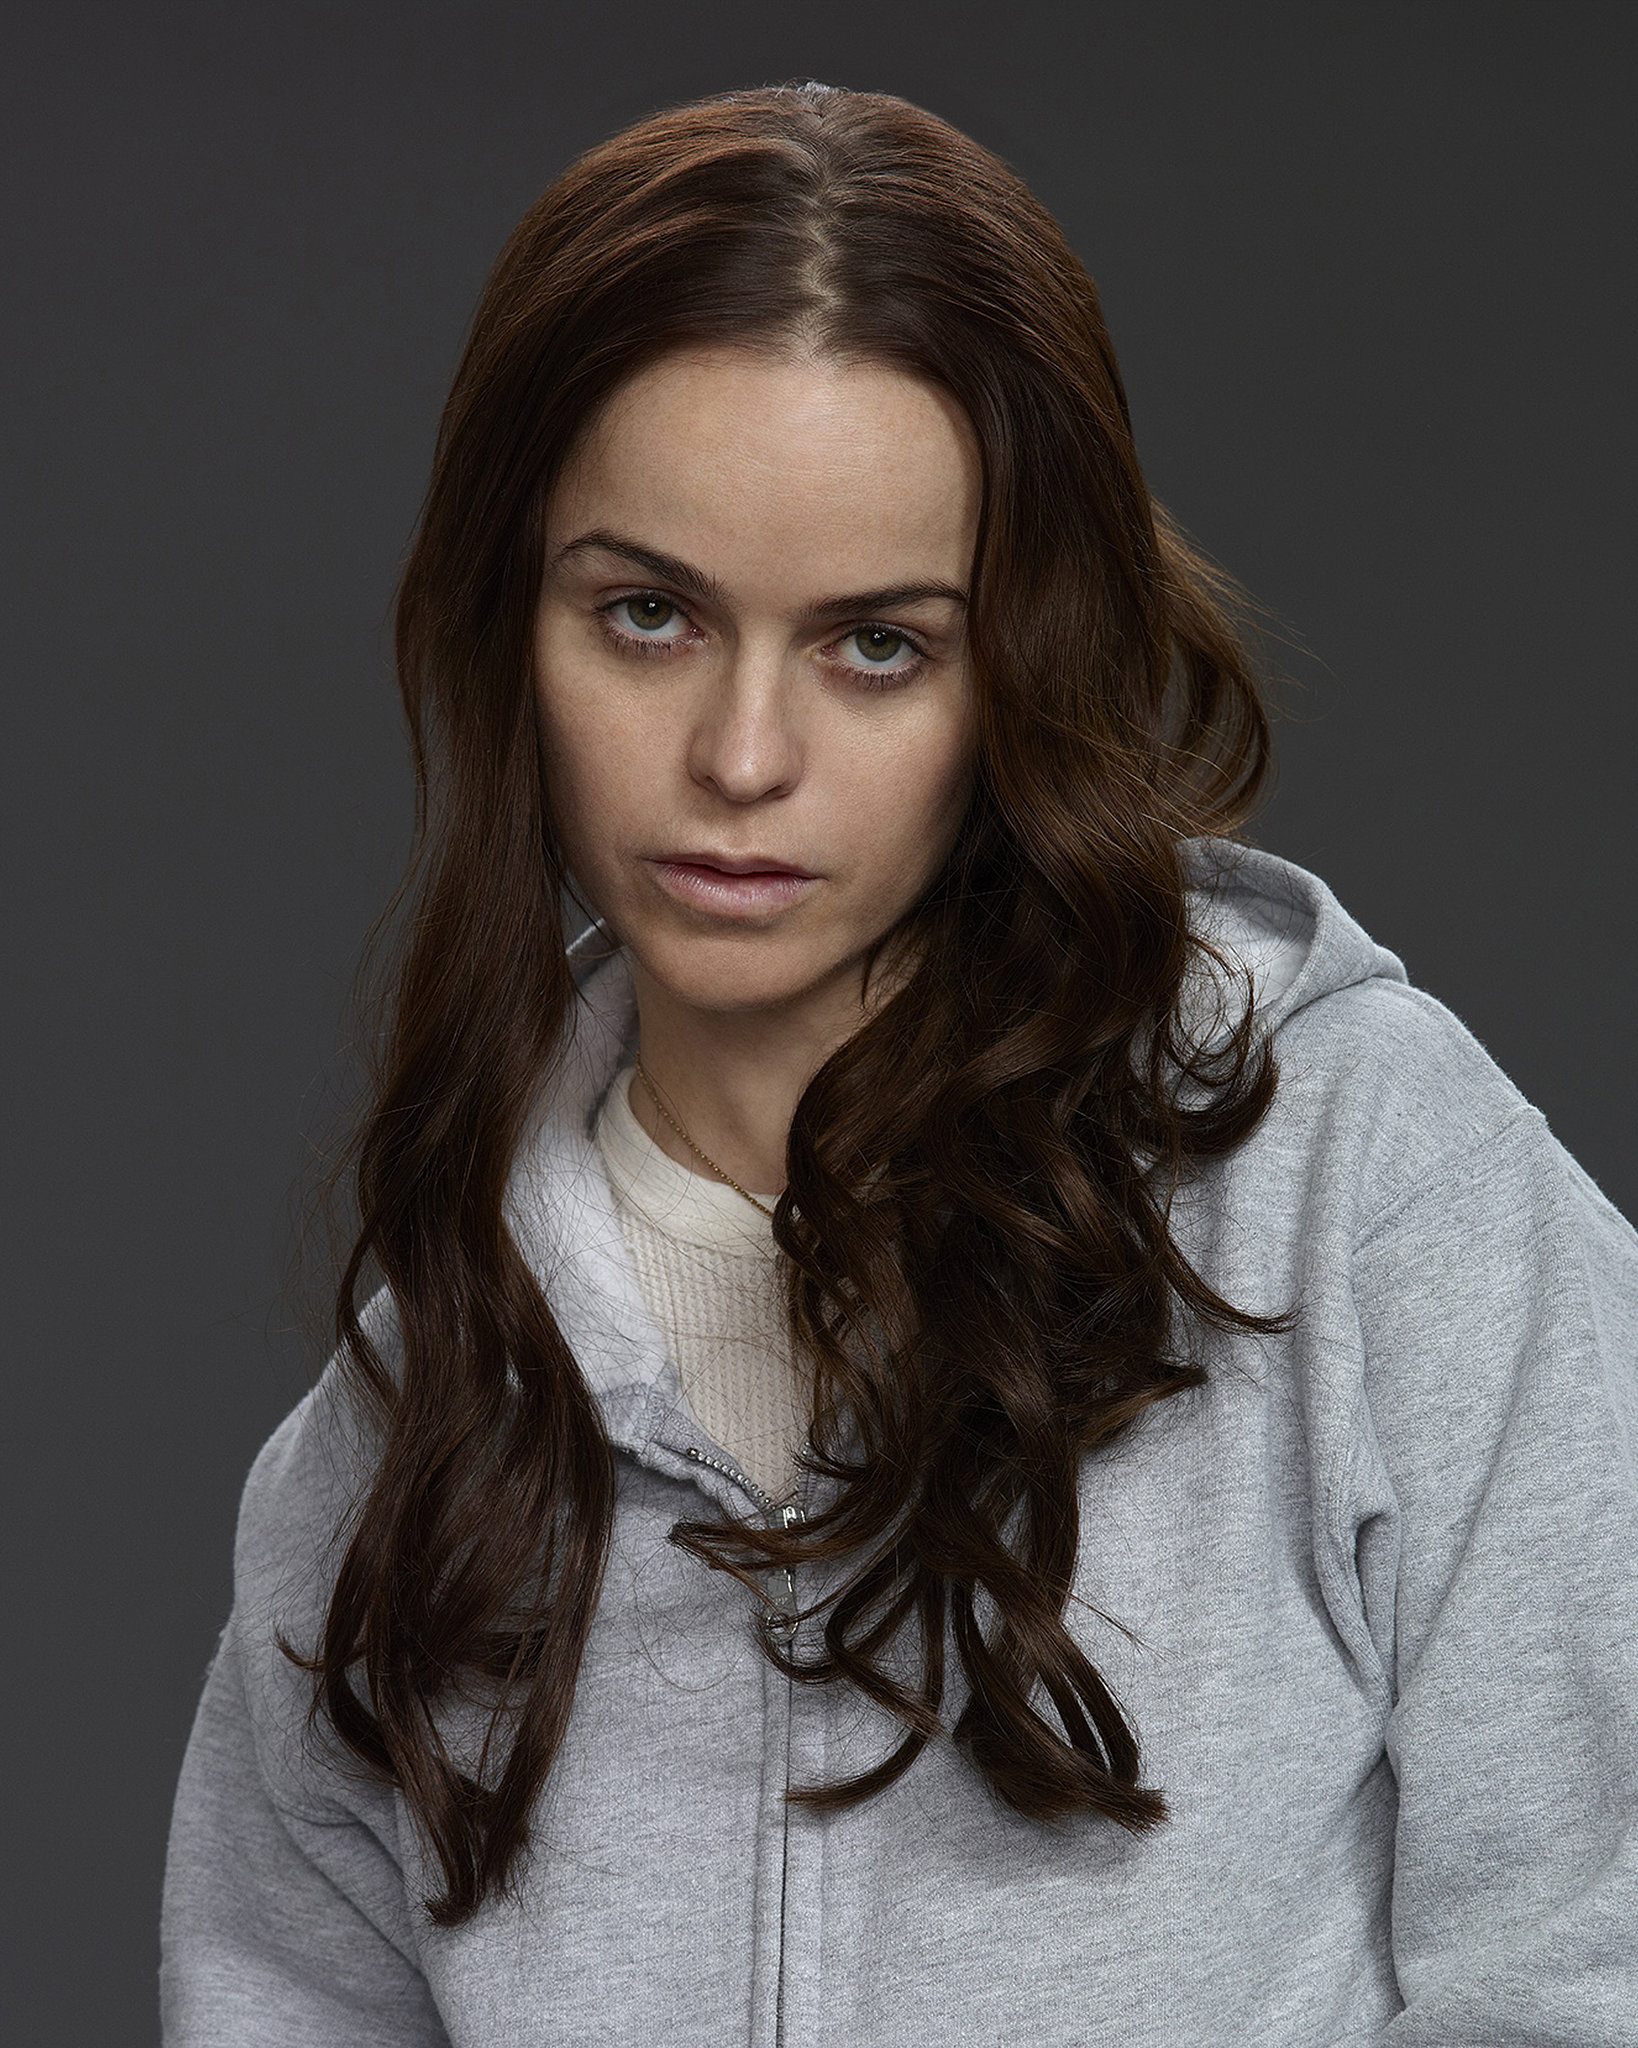 pennsatucky from orange is the new black 450 pop culture